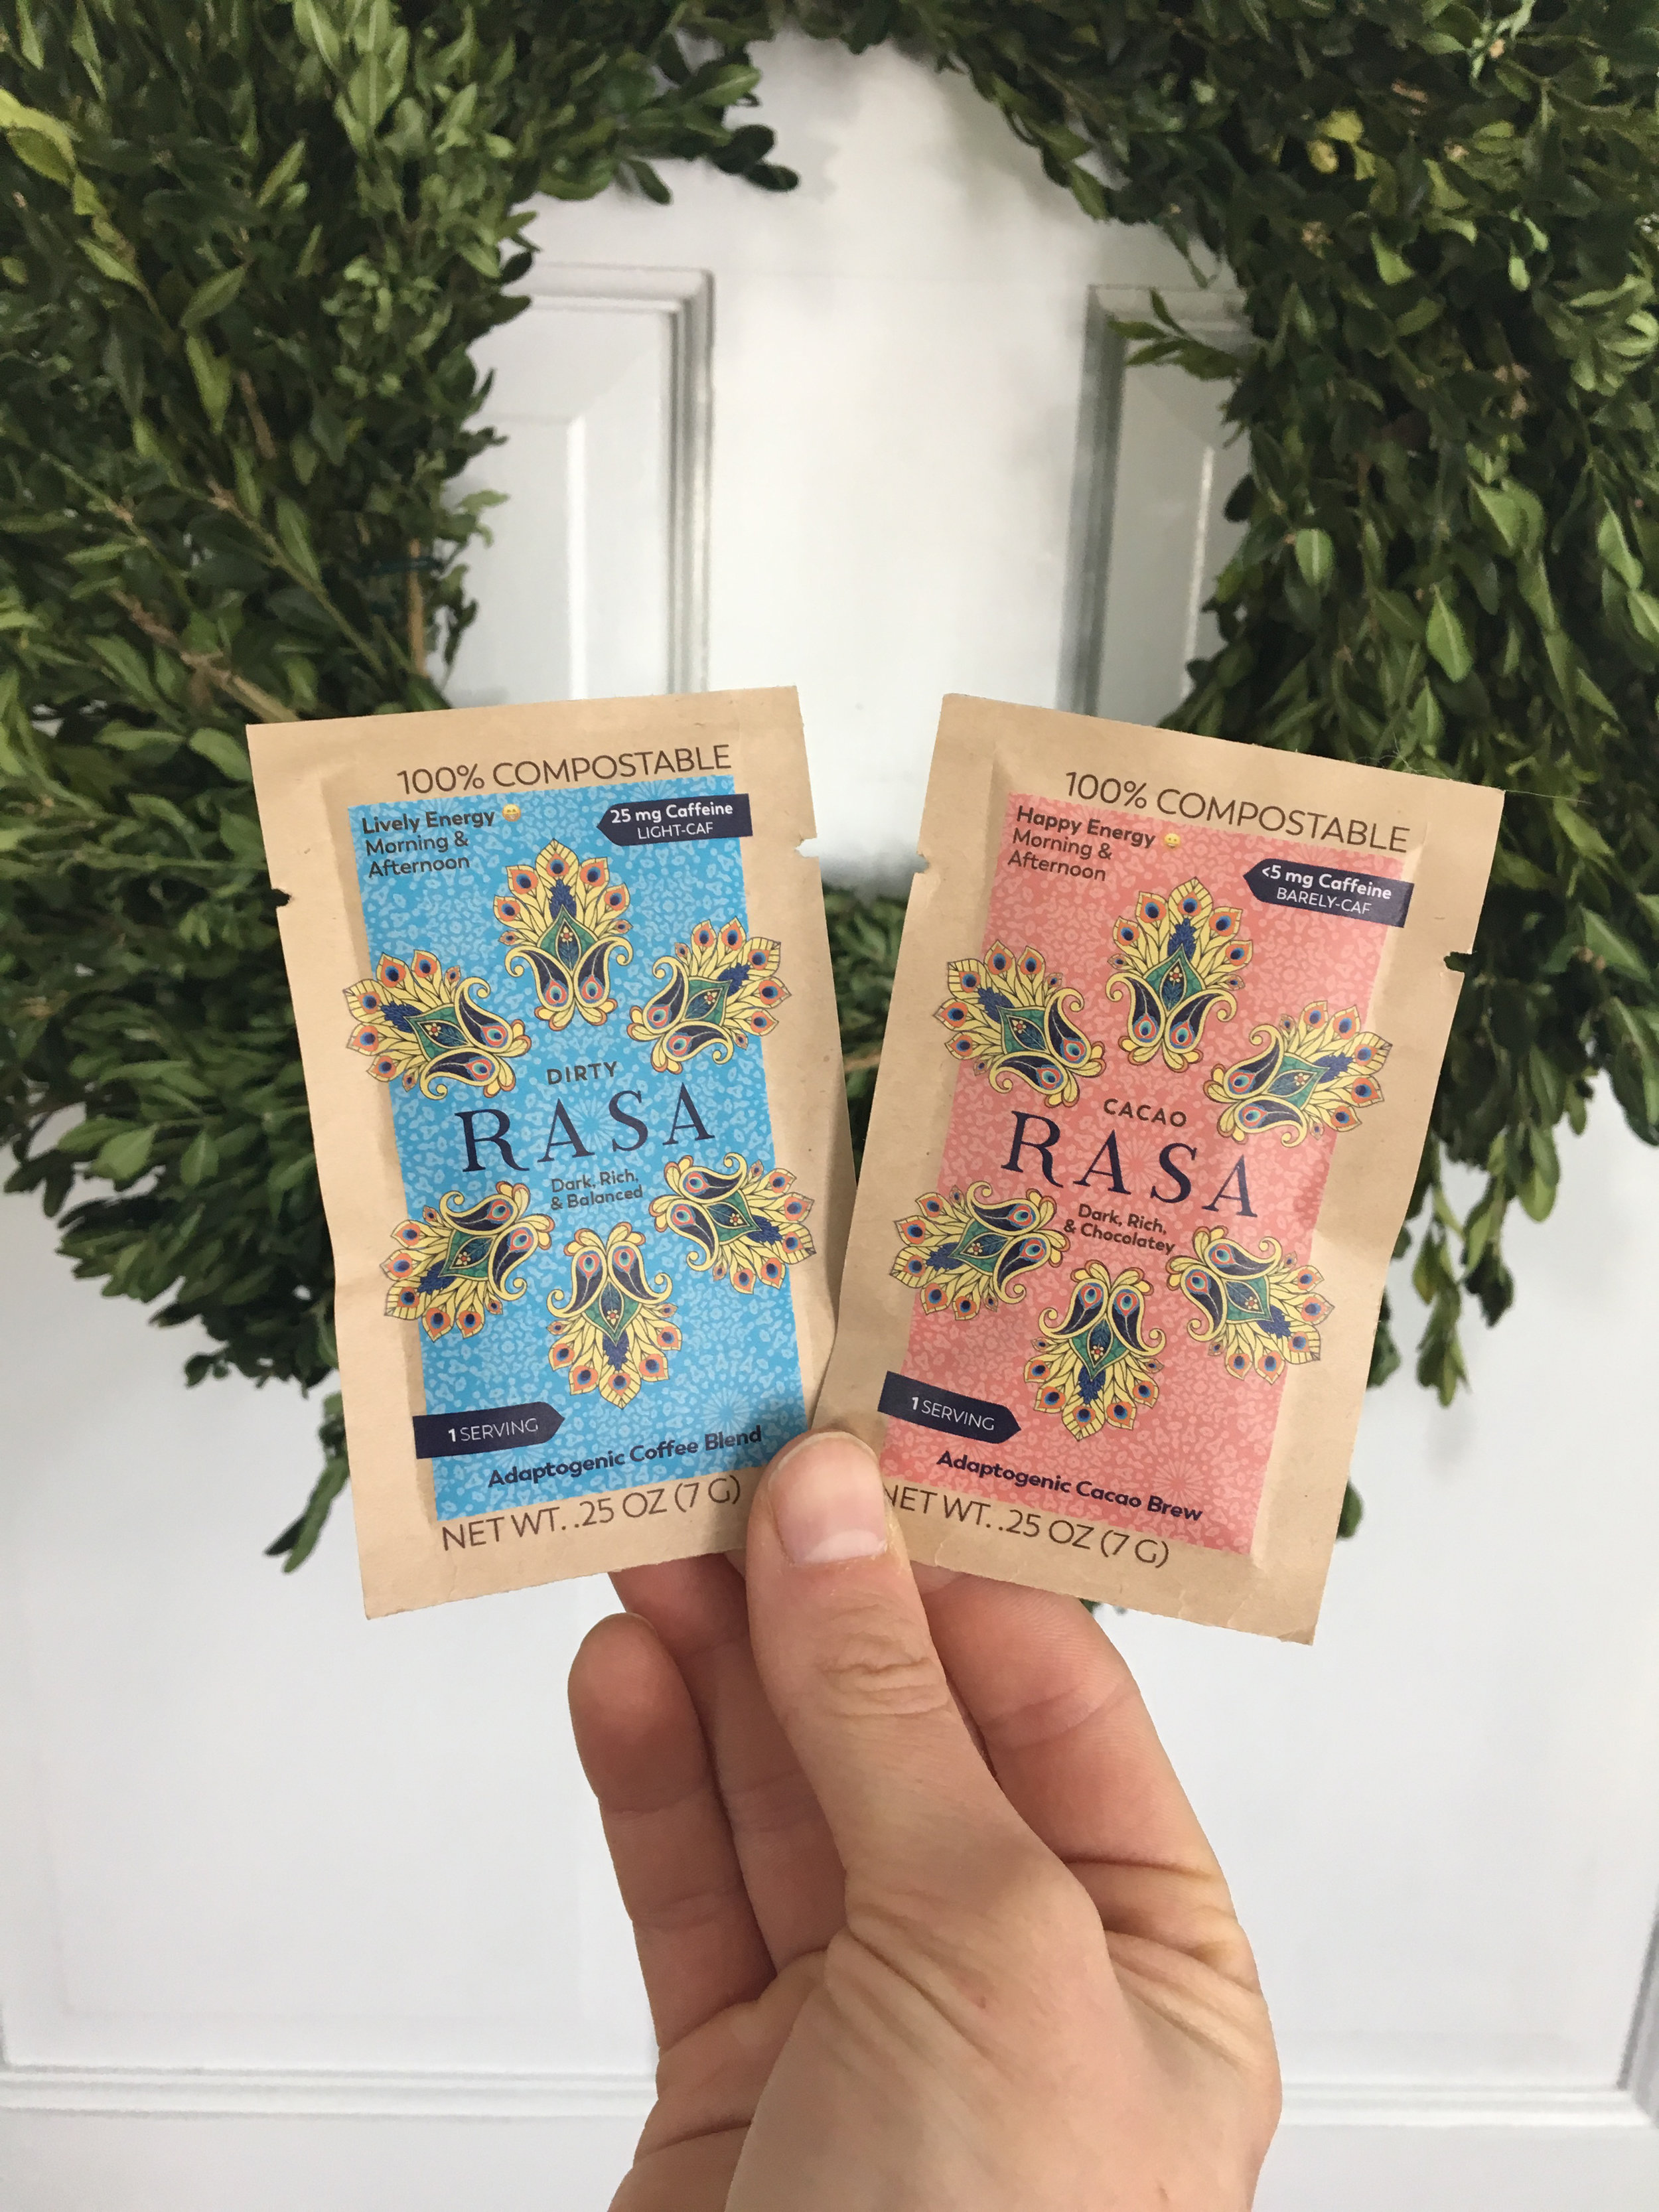 RASA KOFFEE   This coffee alternative contains ZERO caffeine and ZERO common allergies; built on ADAPTOGENS- giving you energy and healing your body one cup at a time! Enjoy the Original, Cacao or Dirty blend. Turn it into a latte or a sweet beverage treat, these blends make you feel good from the inside-out! Email sydney@nourishcapecod.com for a free sample!